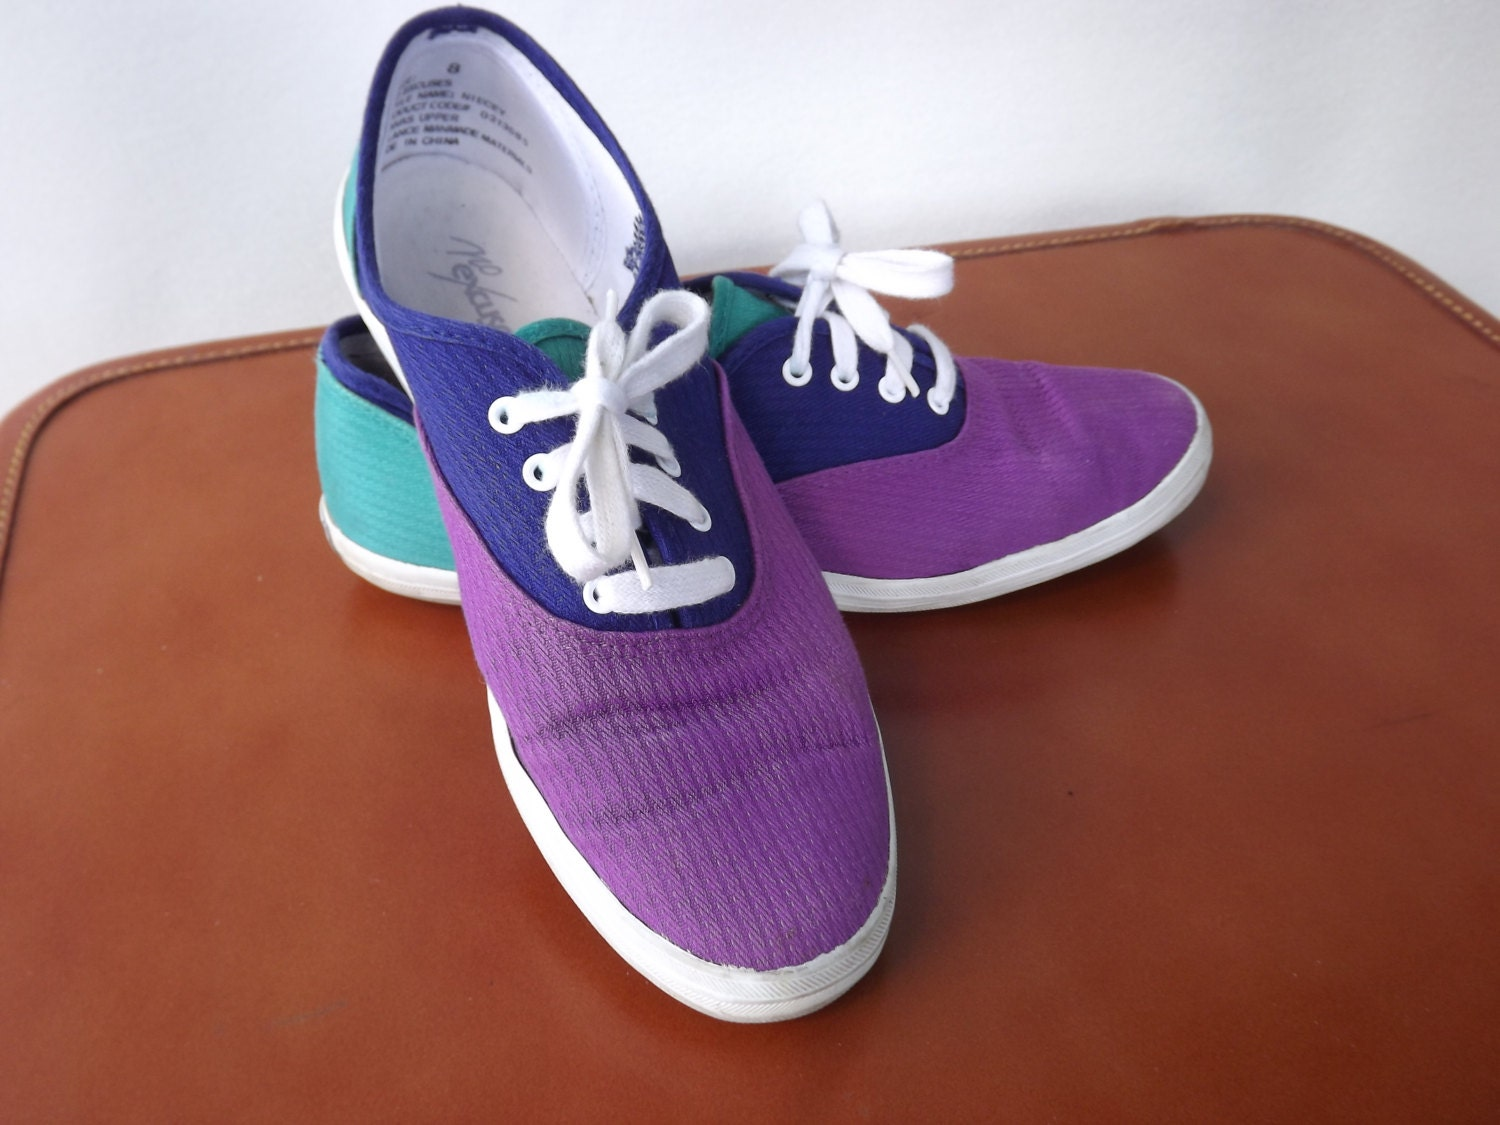 vintage 1980s tennis shoes blue purple and teal by